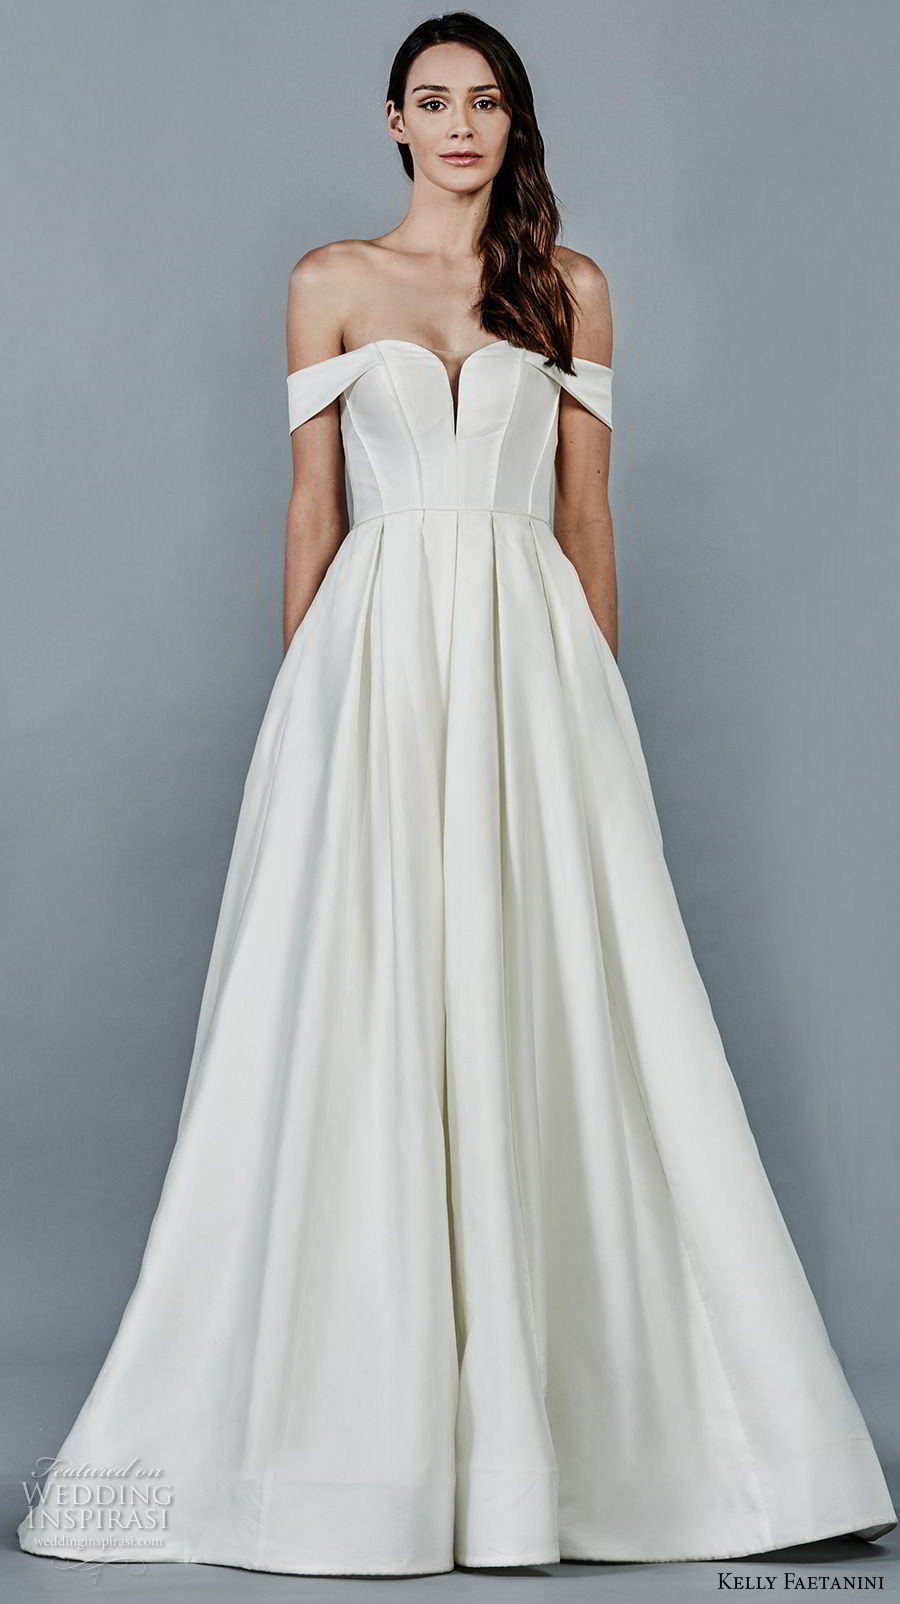 kelly faetanini fall 2018 bridal off the shoulder sweetheart neckline simple clean a line wedding dress open back chapel train (8) mv